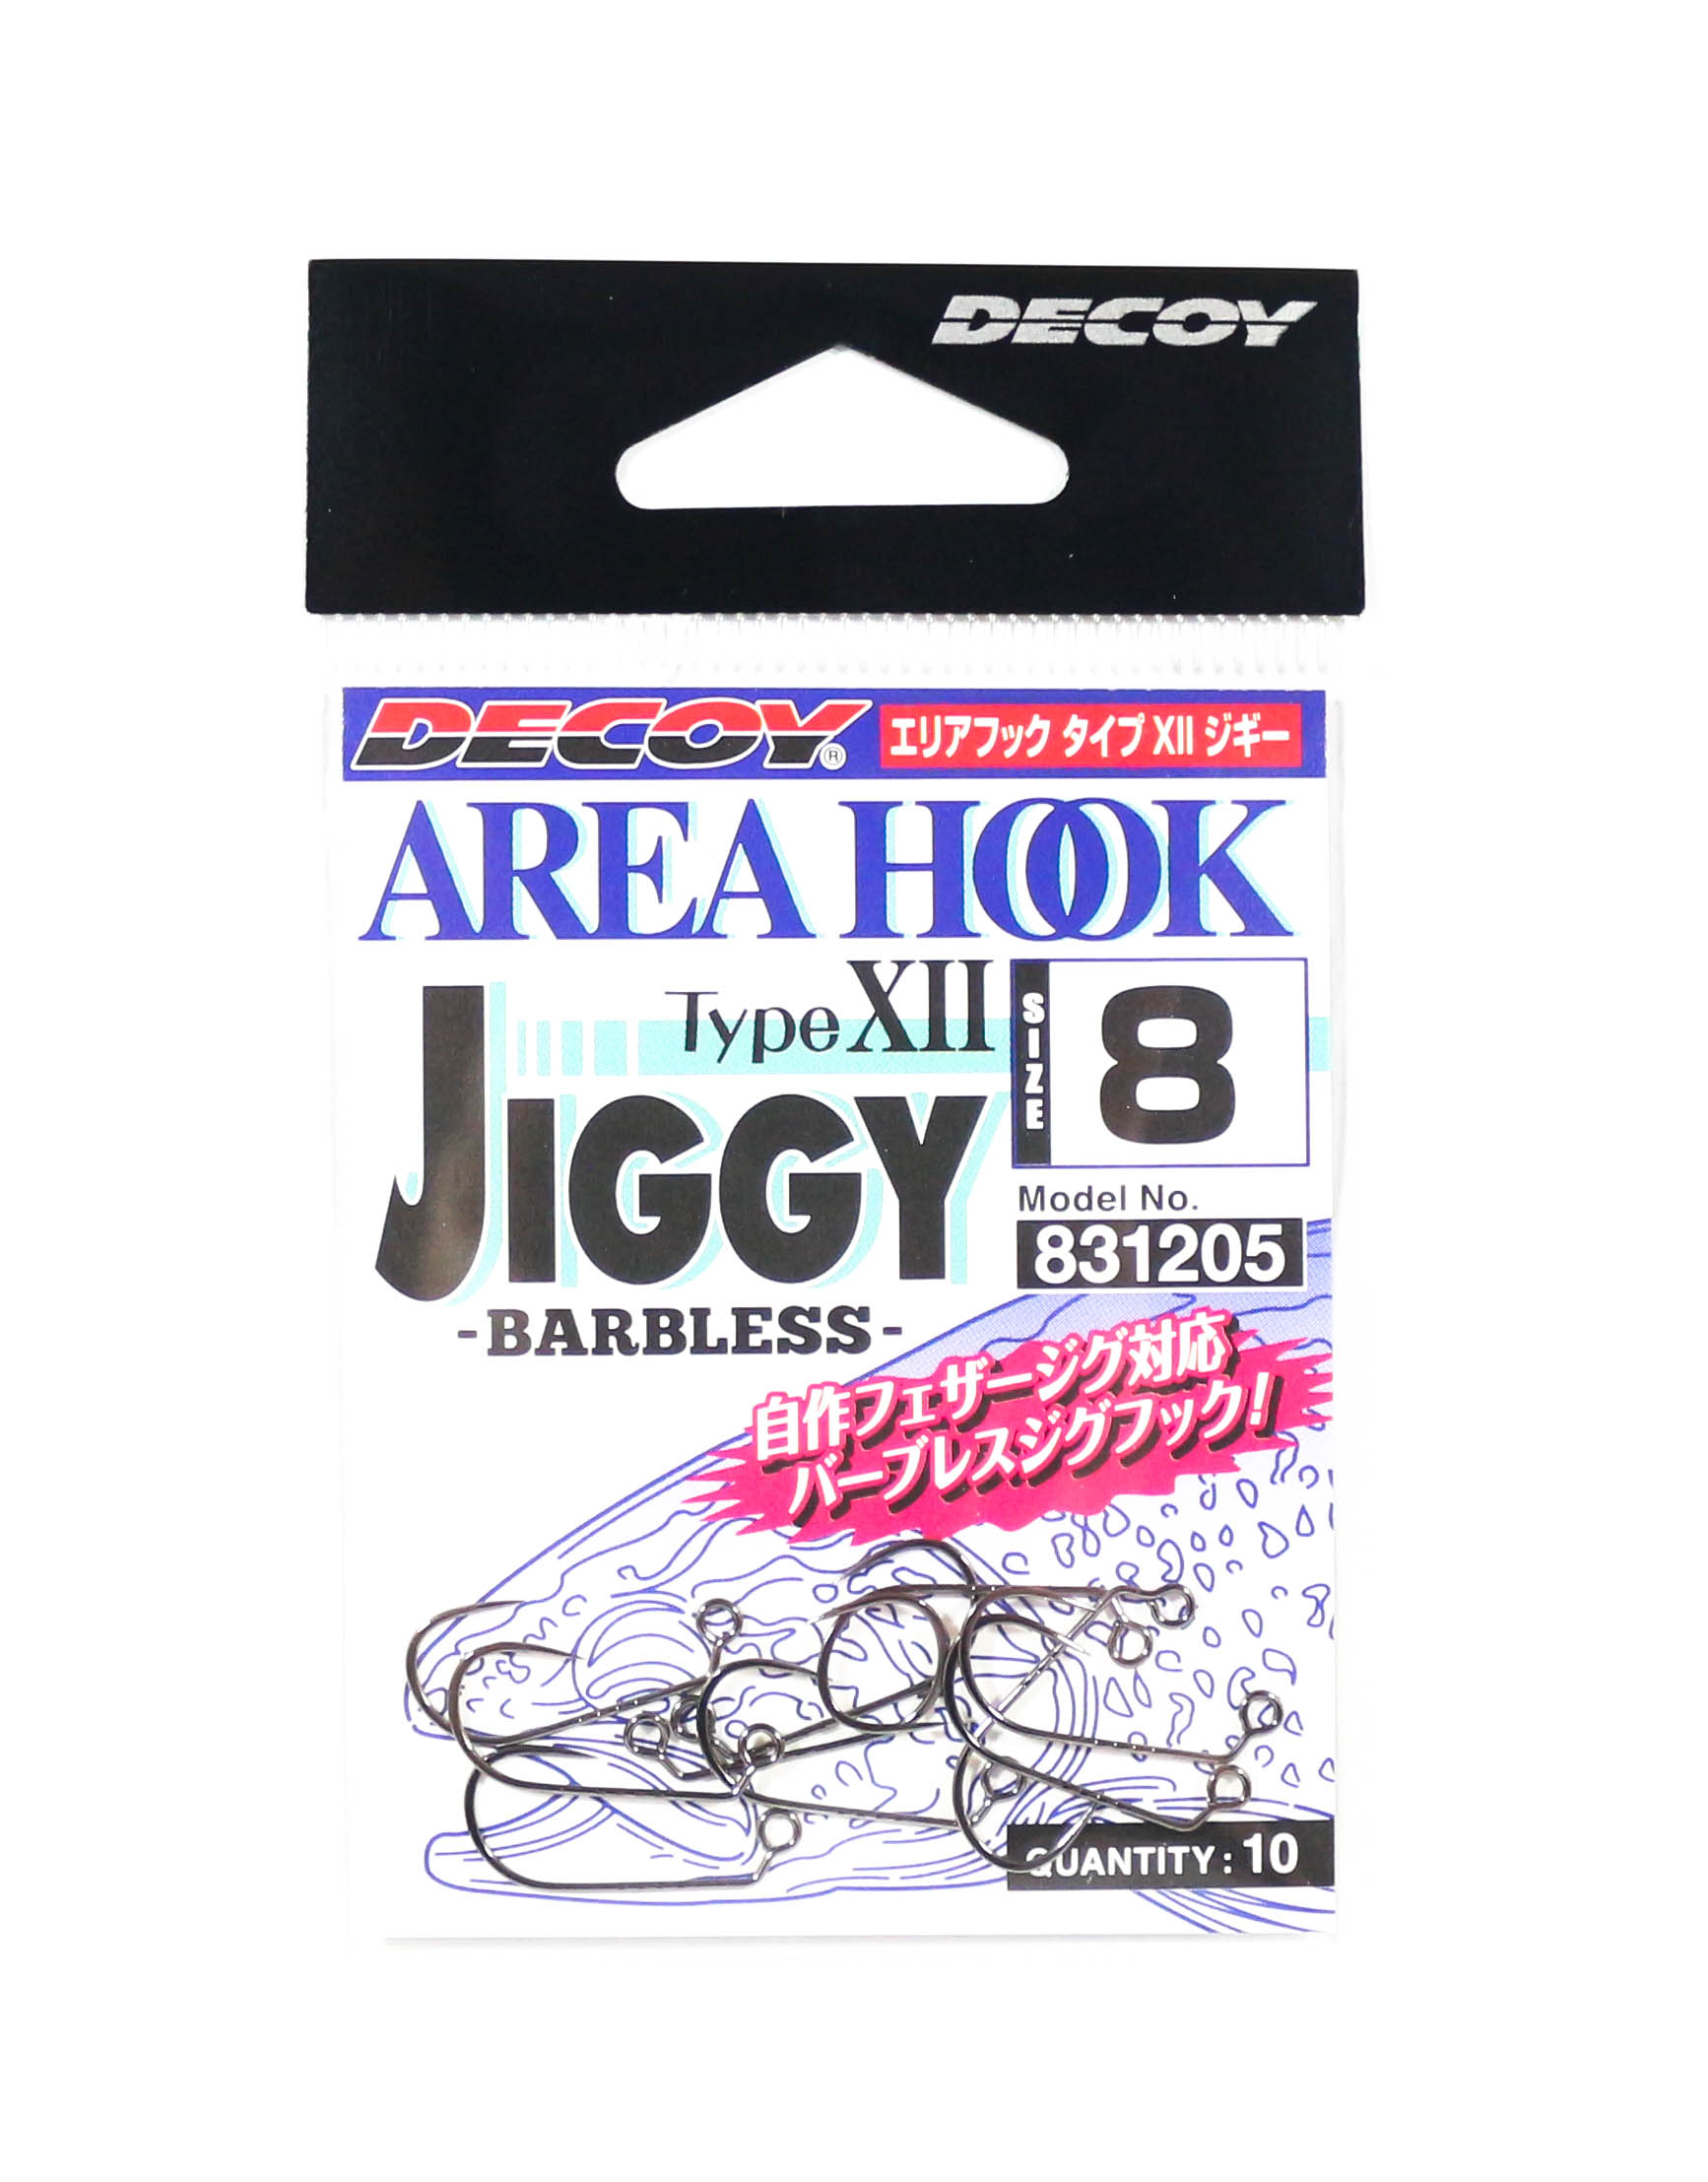 Decoy AH-12 Jiggy Barbless Area Plugging Single Lure Hooks Size 8 (1205)